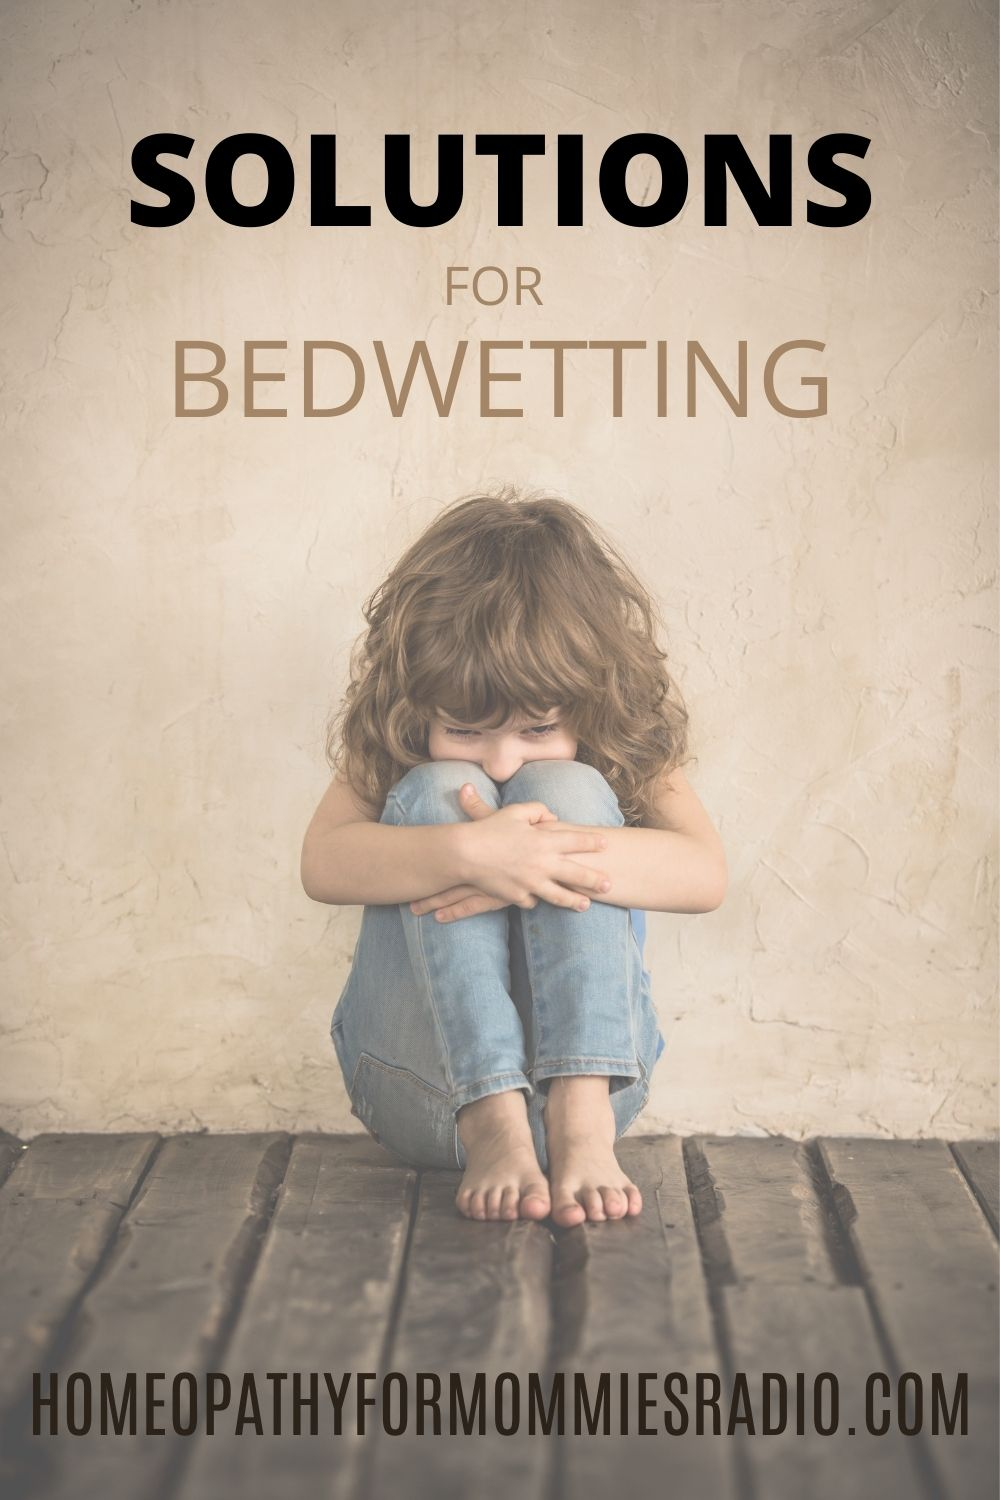 Solutions for Bedwetting